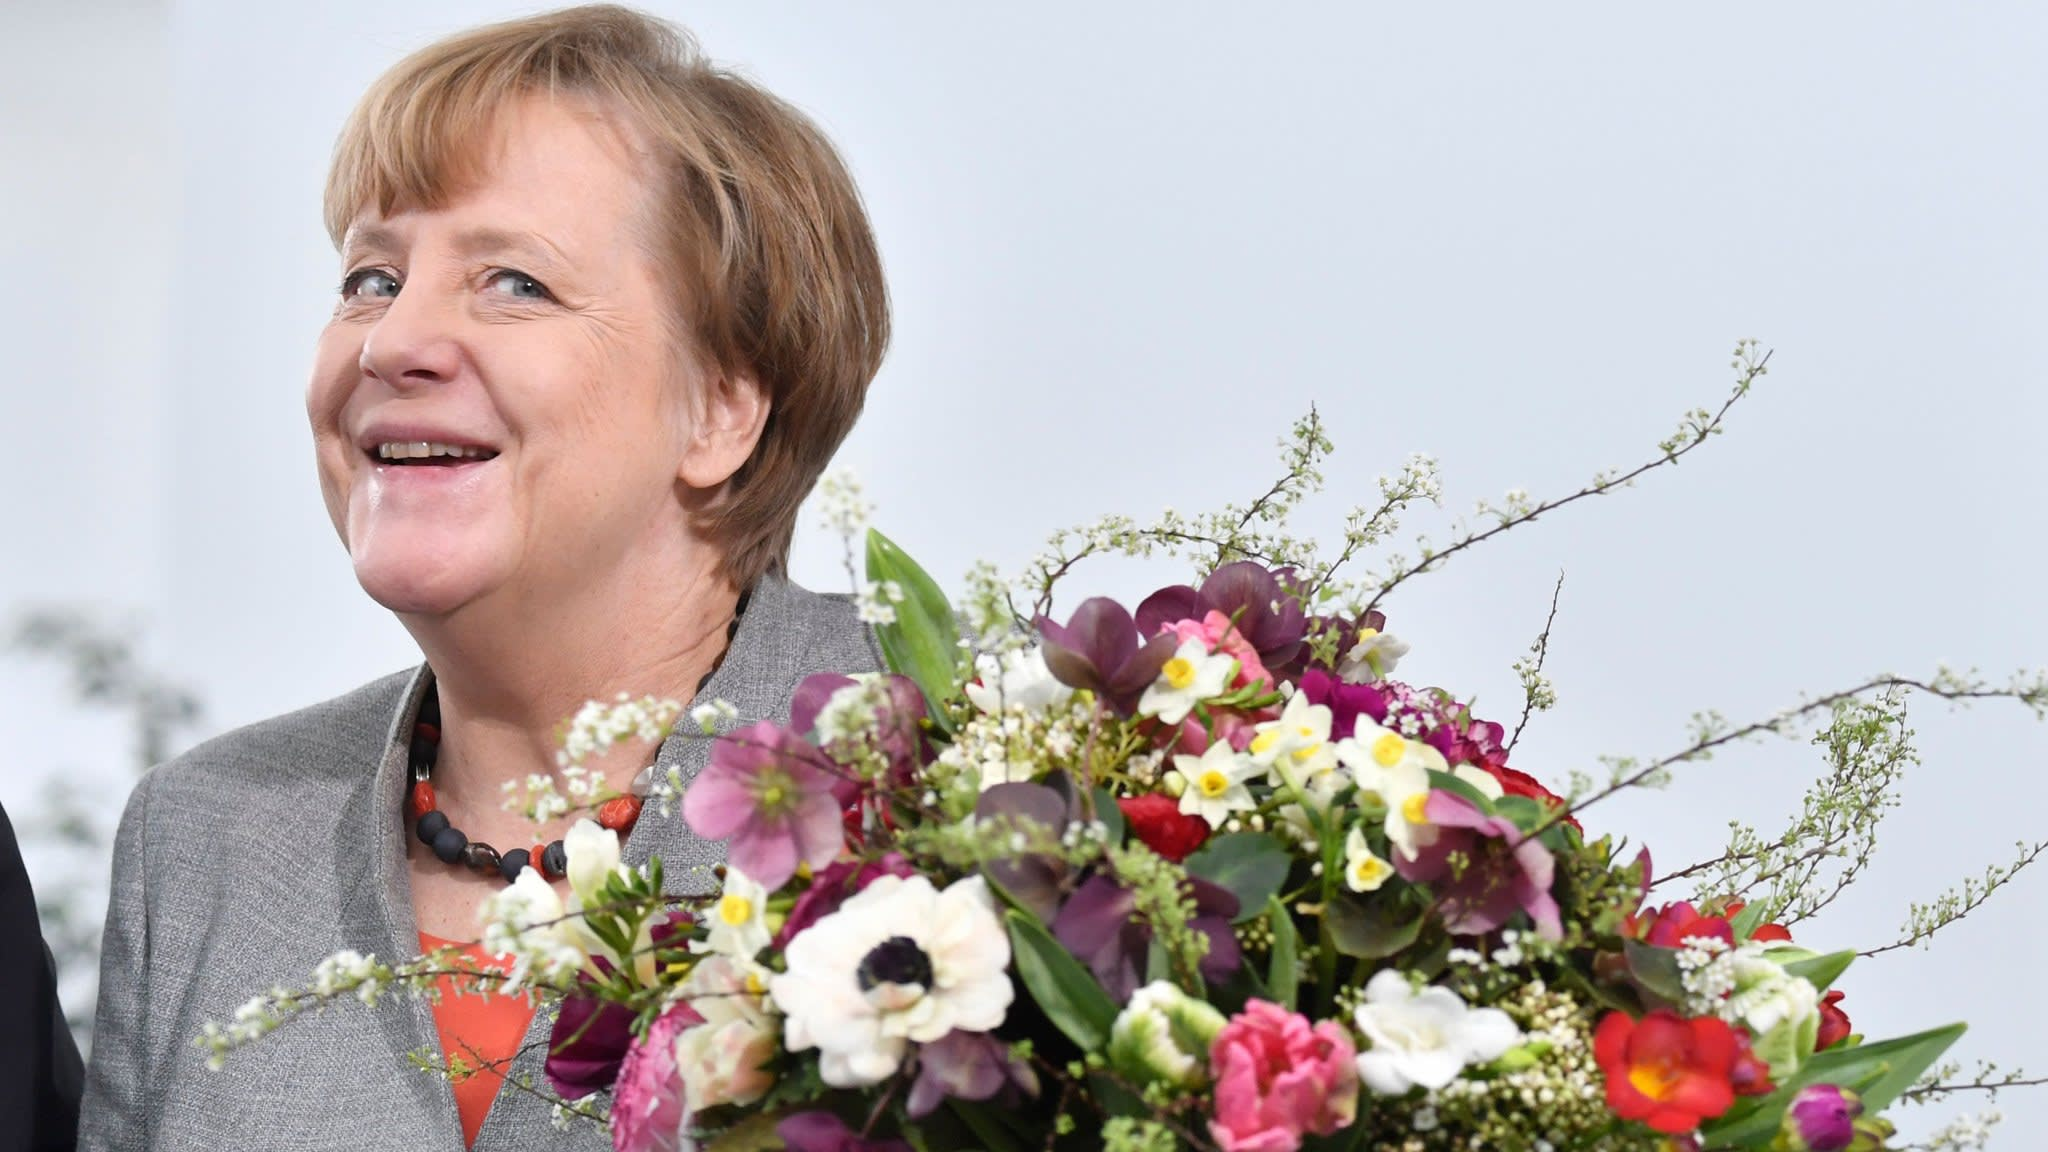 Deal with SPD puts Angela Merkel back in Germany's driving seat